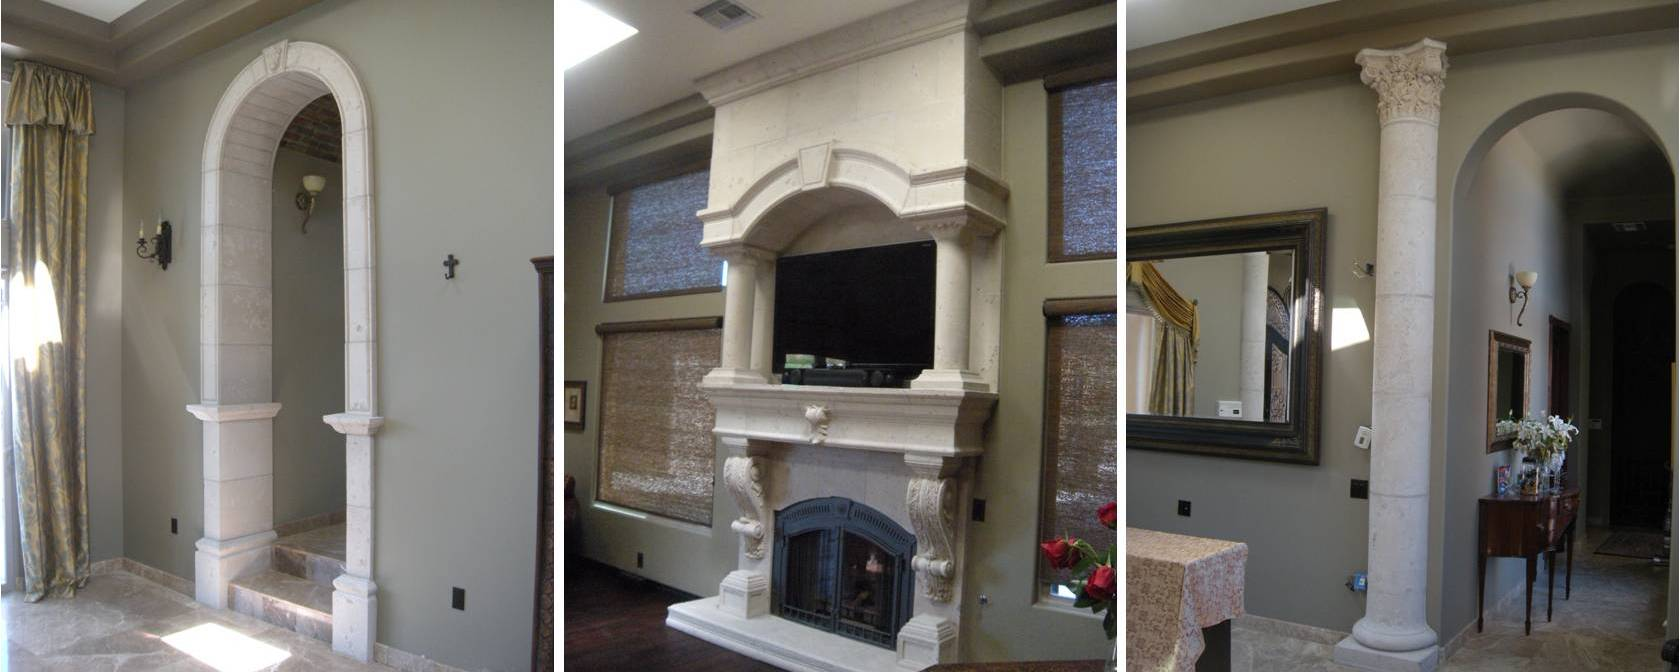 Mesa Precast | Home Decor | Interior Design | Door Surrounds, Fireplace, Corbels, Decorative Columns | Architectural Precast, GFRC